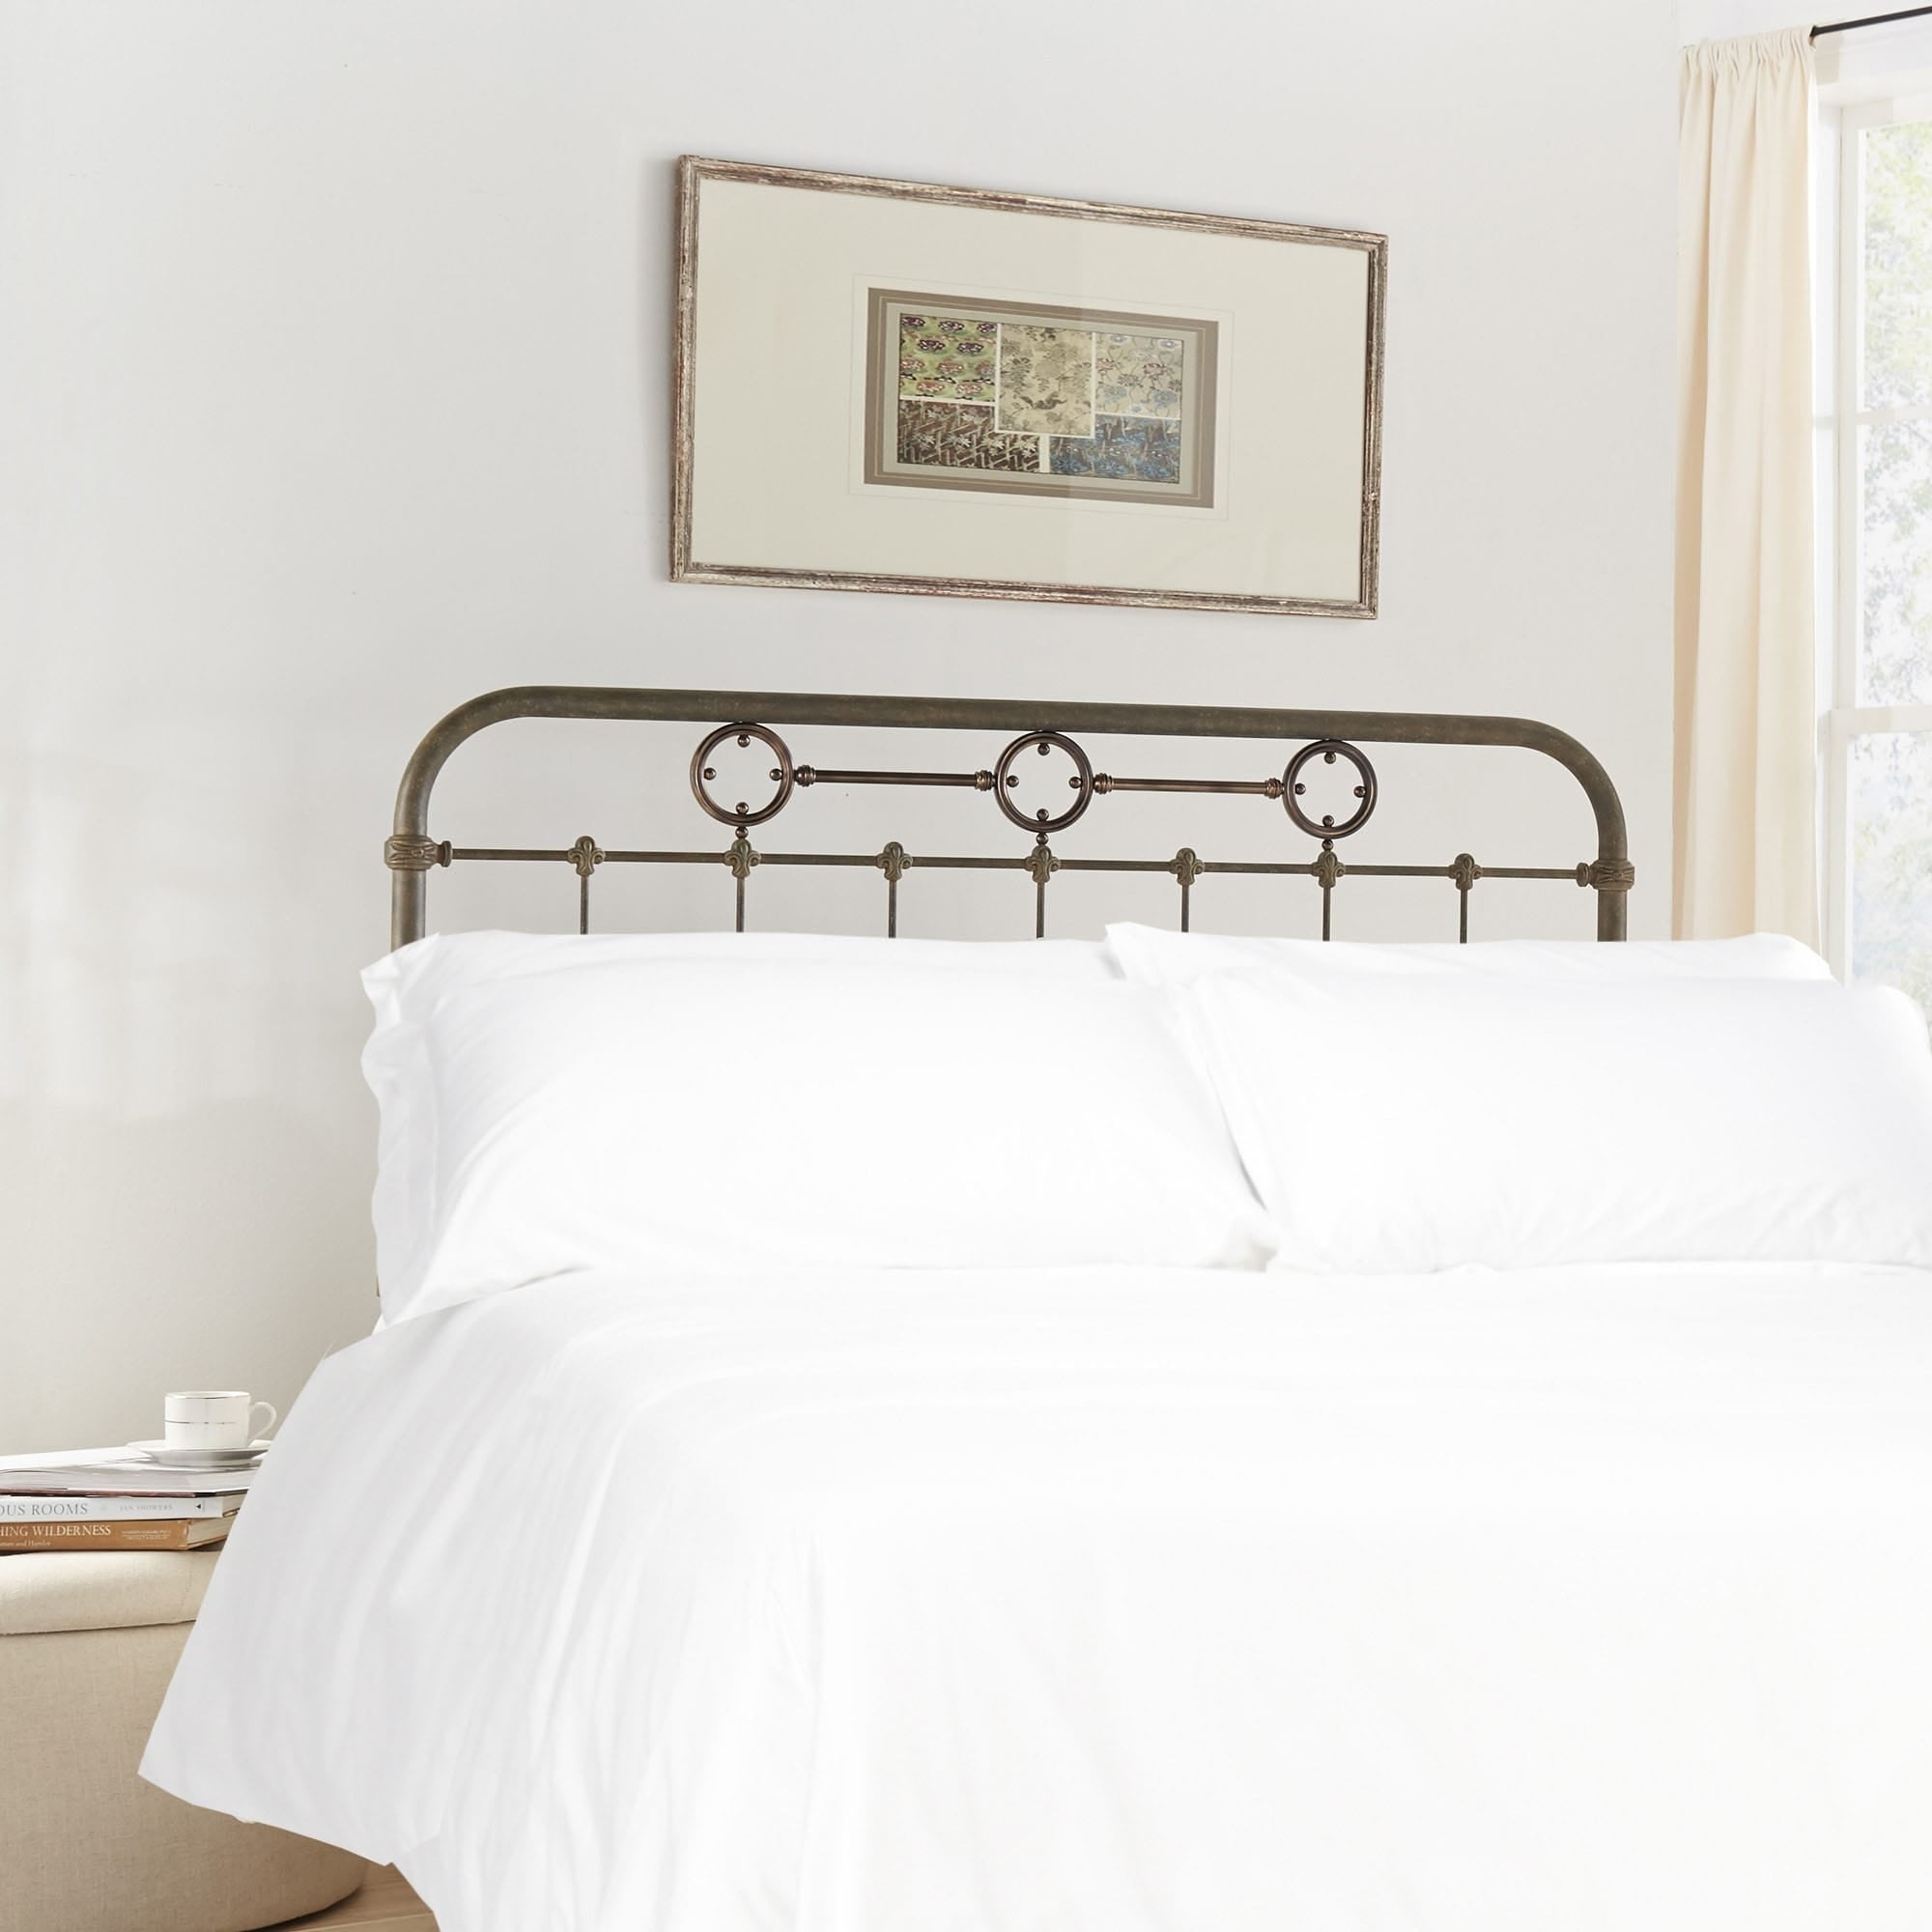 Fashion Bed Group Madera Metal Headboard Panel with Brass...